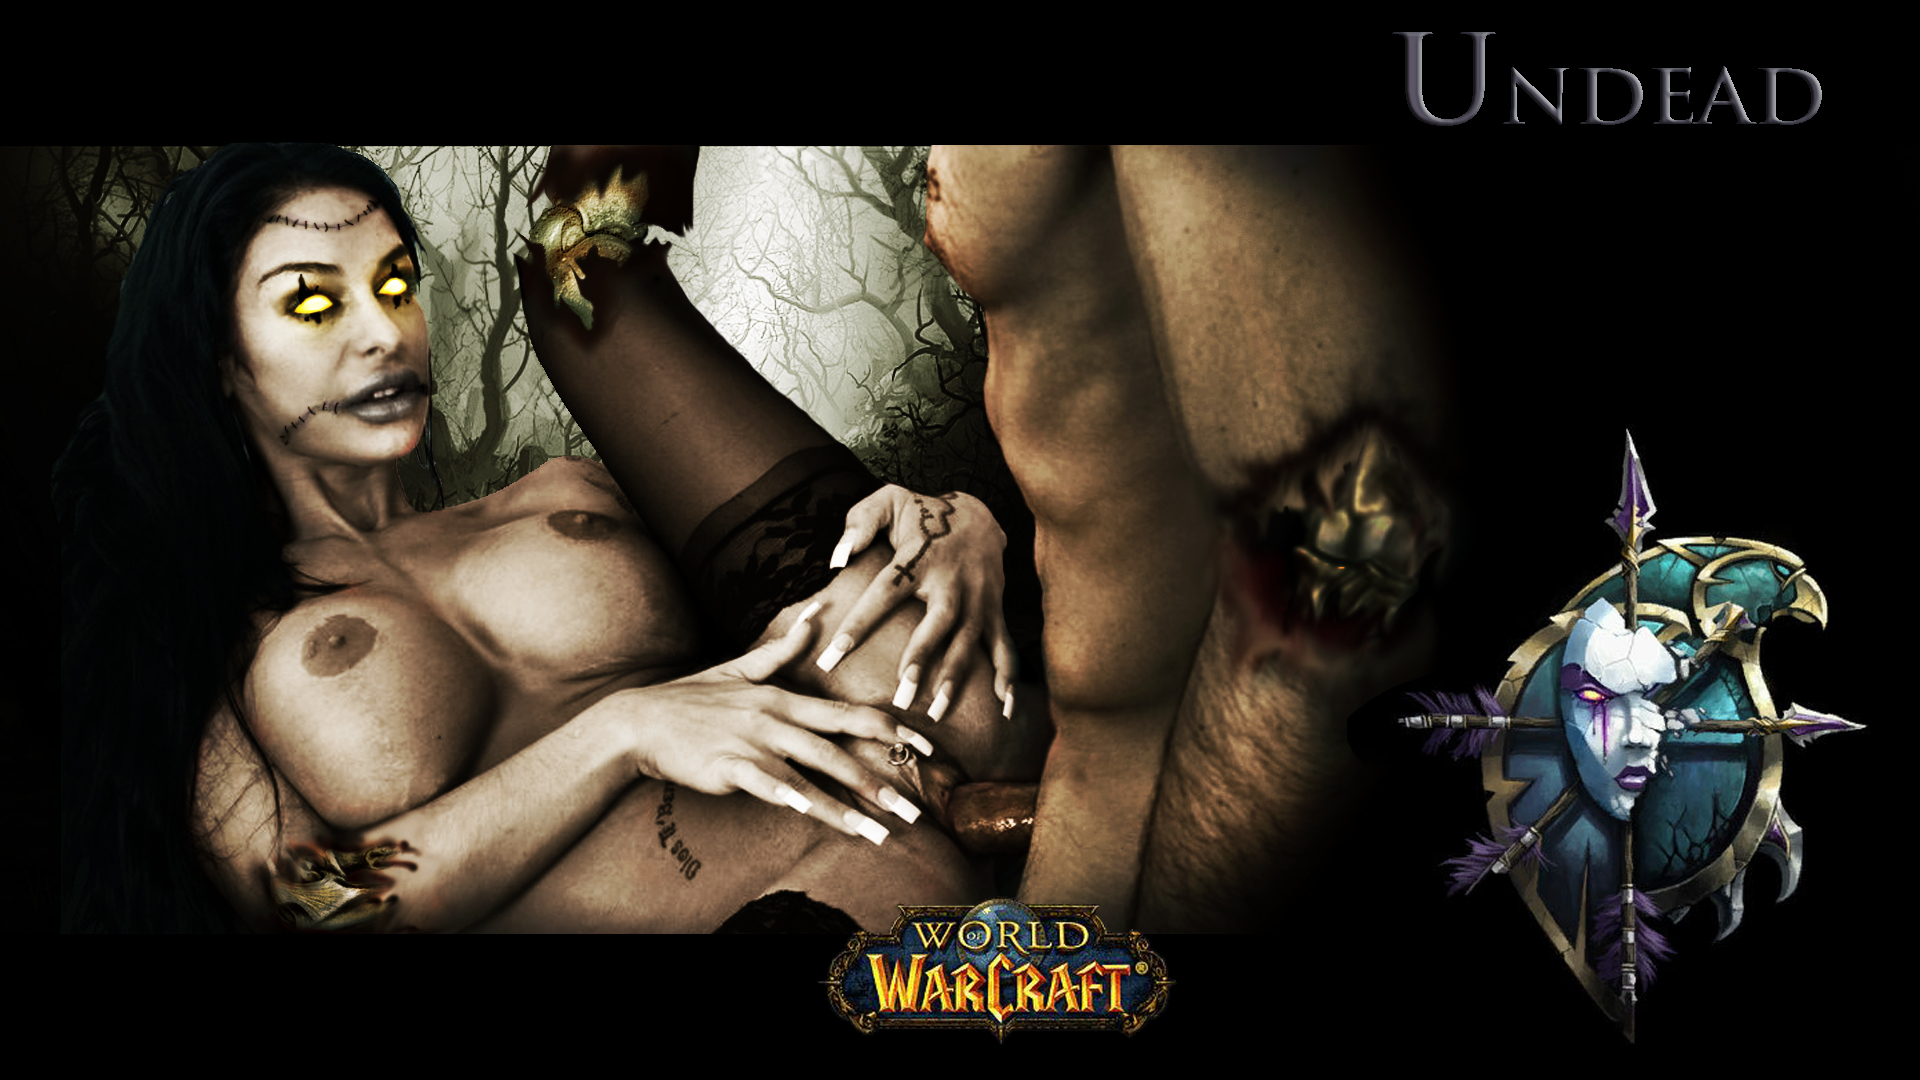 Warcraft rack torture nude clips